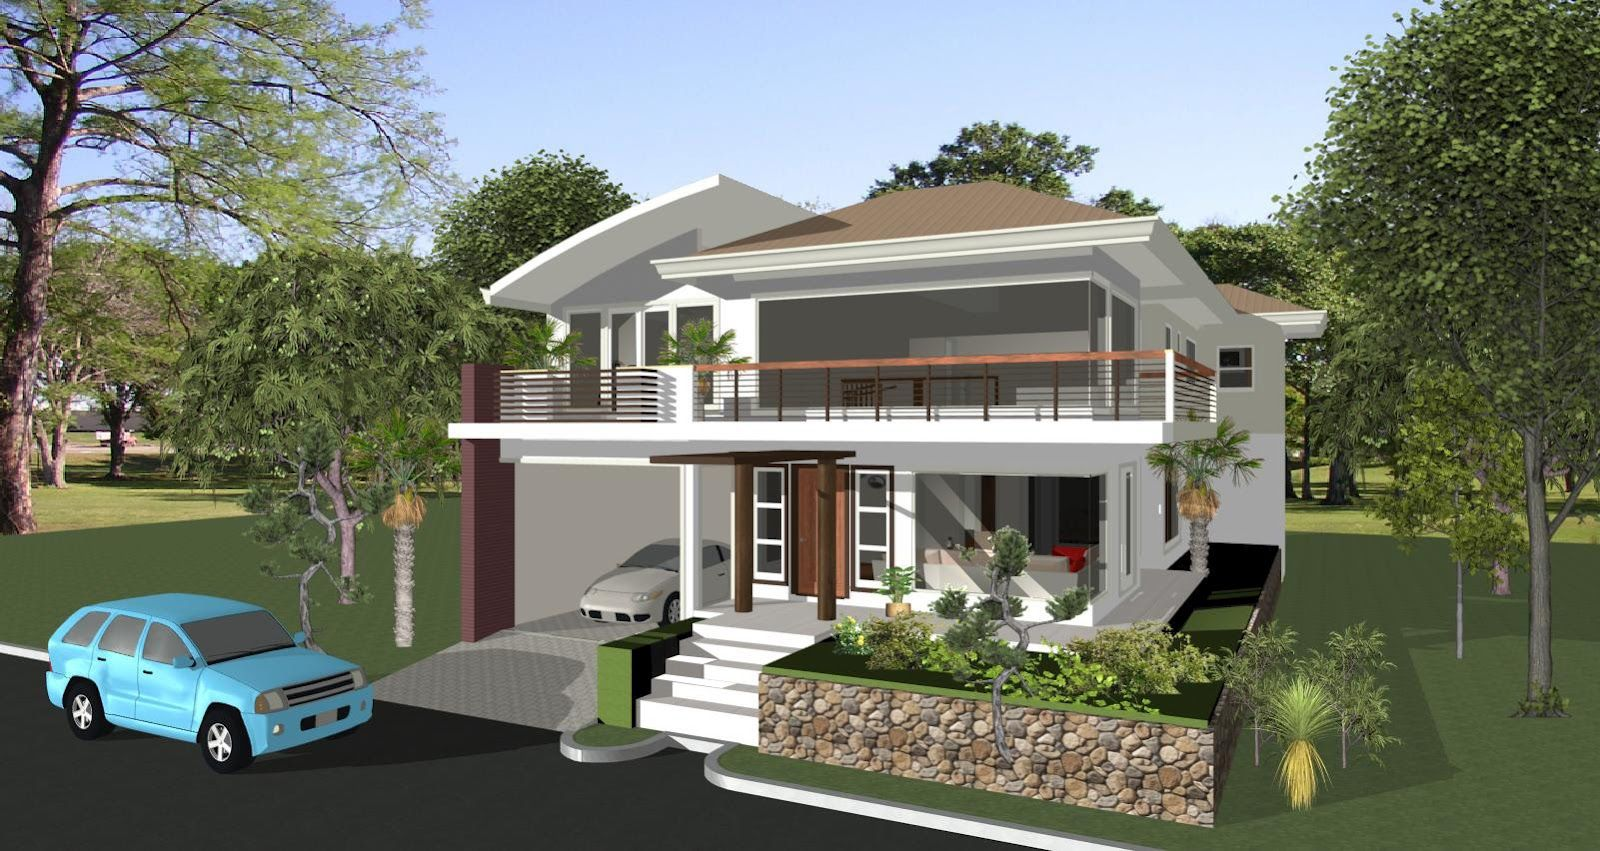 Dream home designs erecre group realty design and for Design your dream house